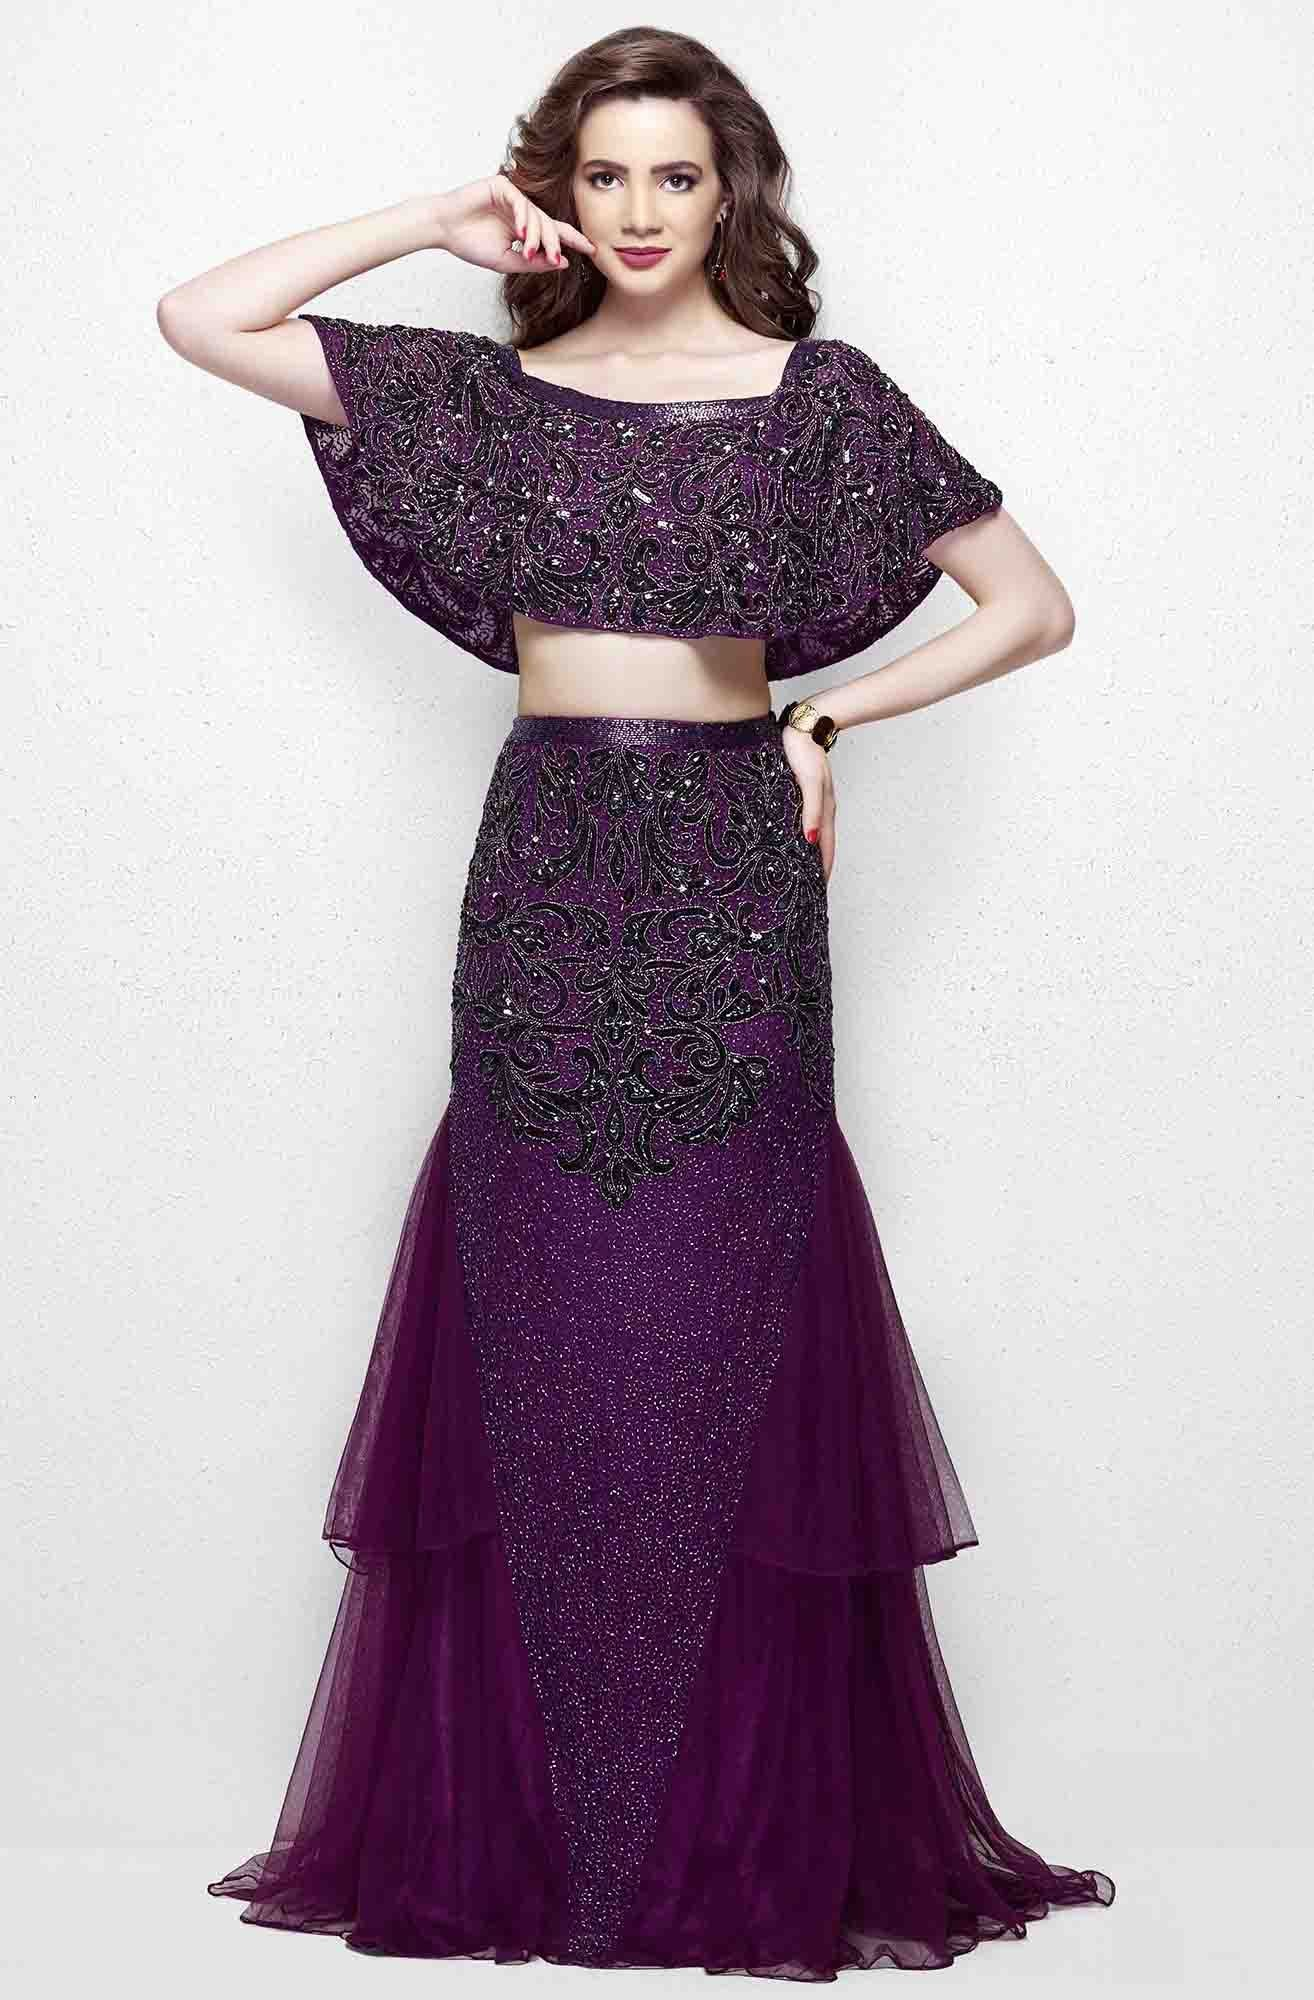 Primavera - 3034 Two Piece Embellished Dress in Purple